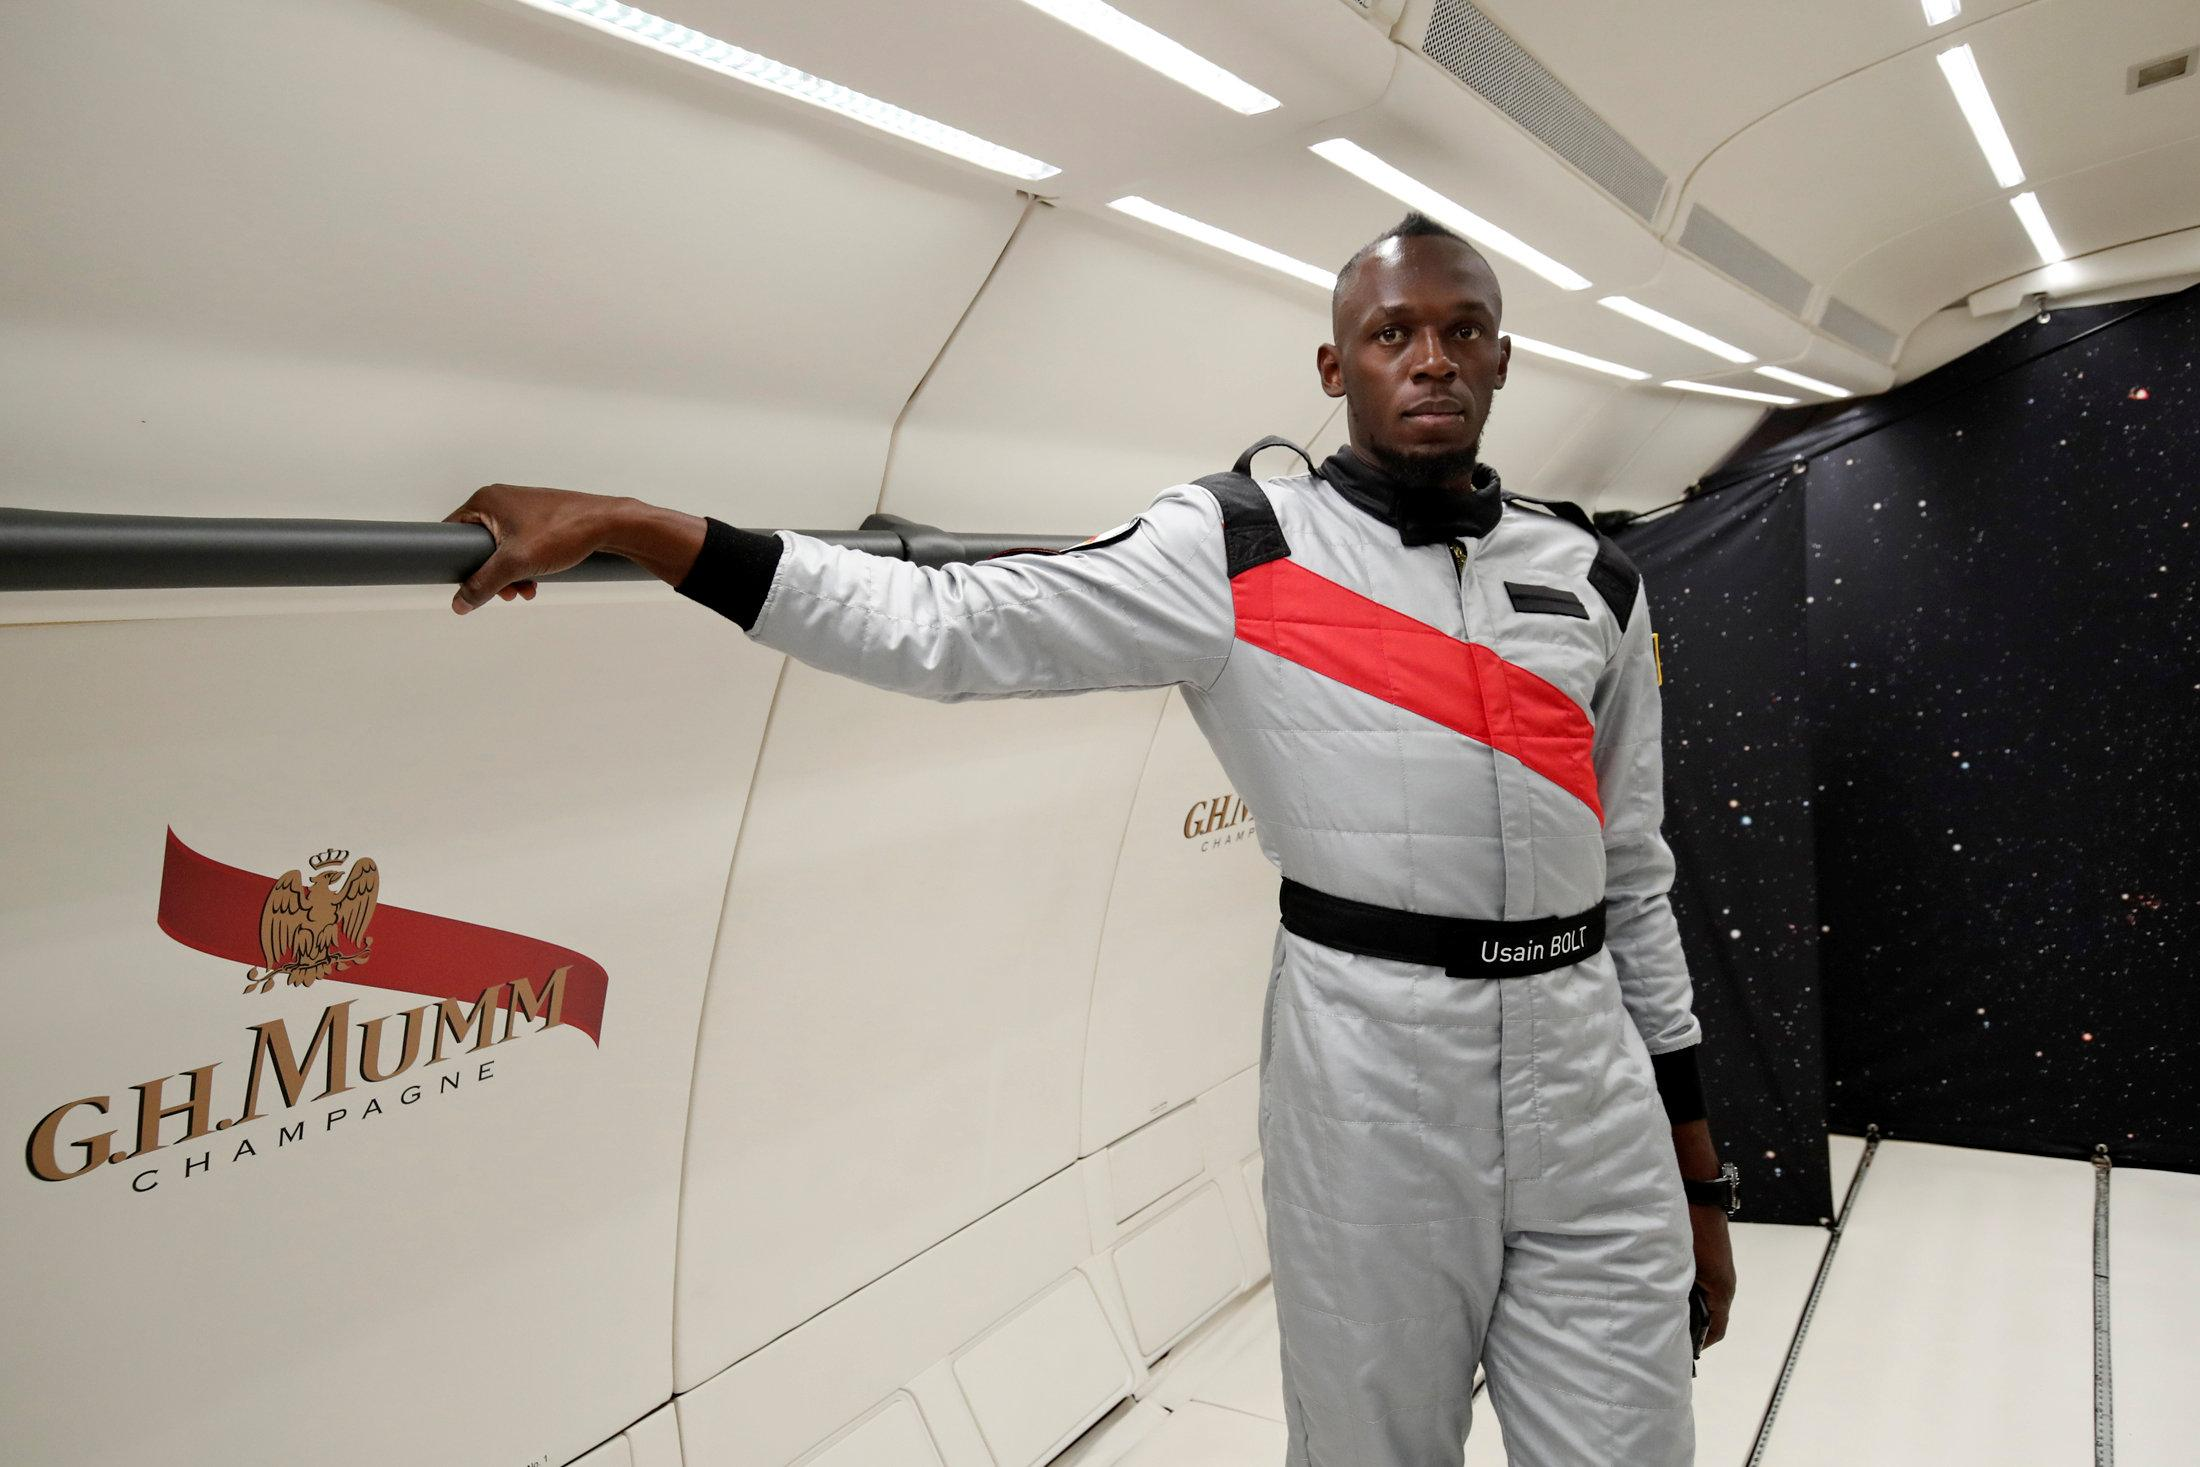 Usain Bolt flew up in a plane modified to recreate space-like zero gravity